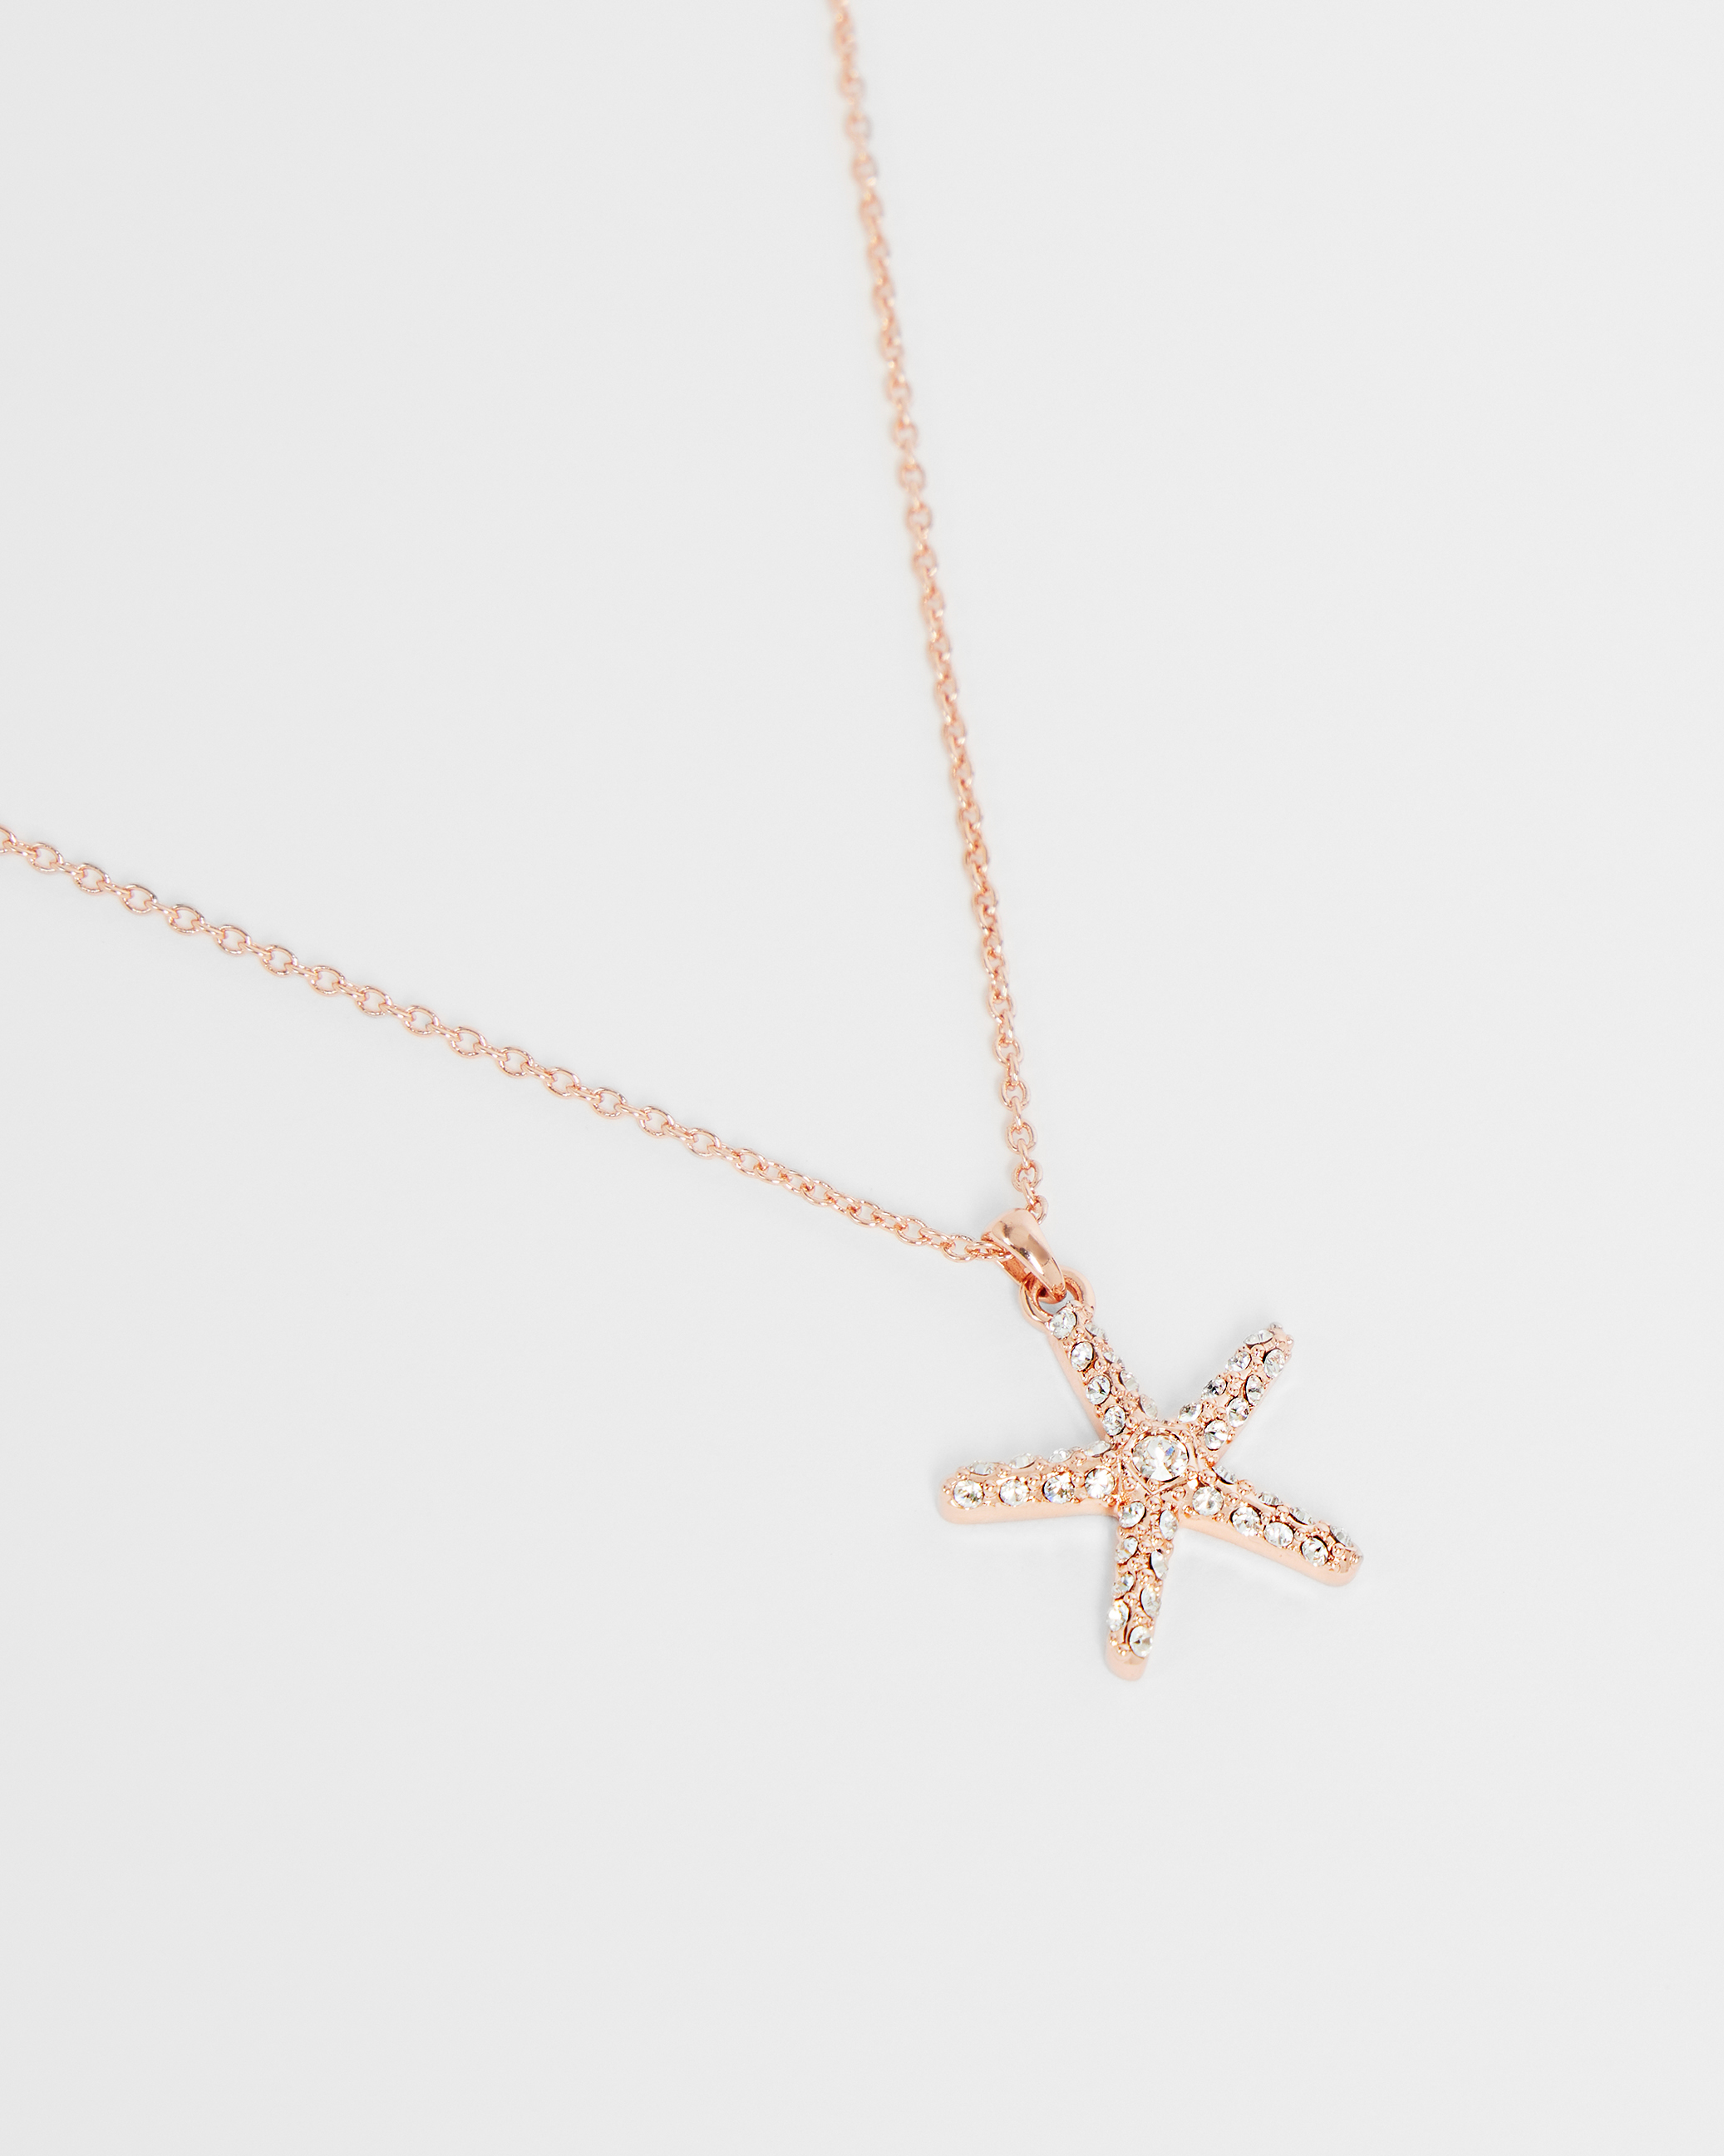 necklace Gold plated brass 48x35  2261 Starfish pendant